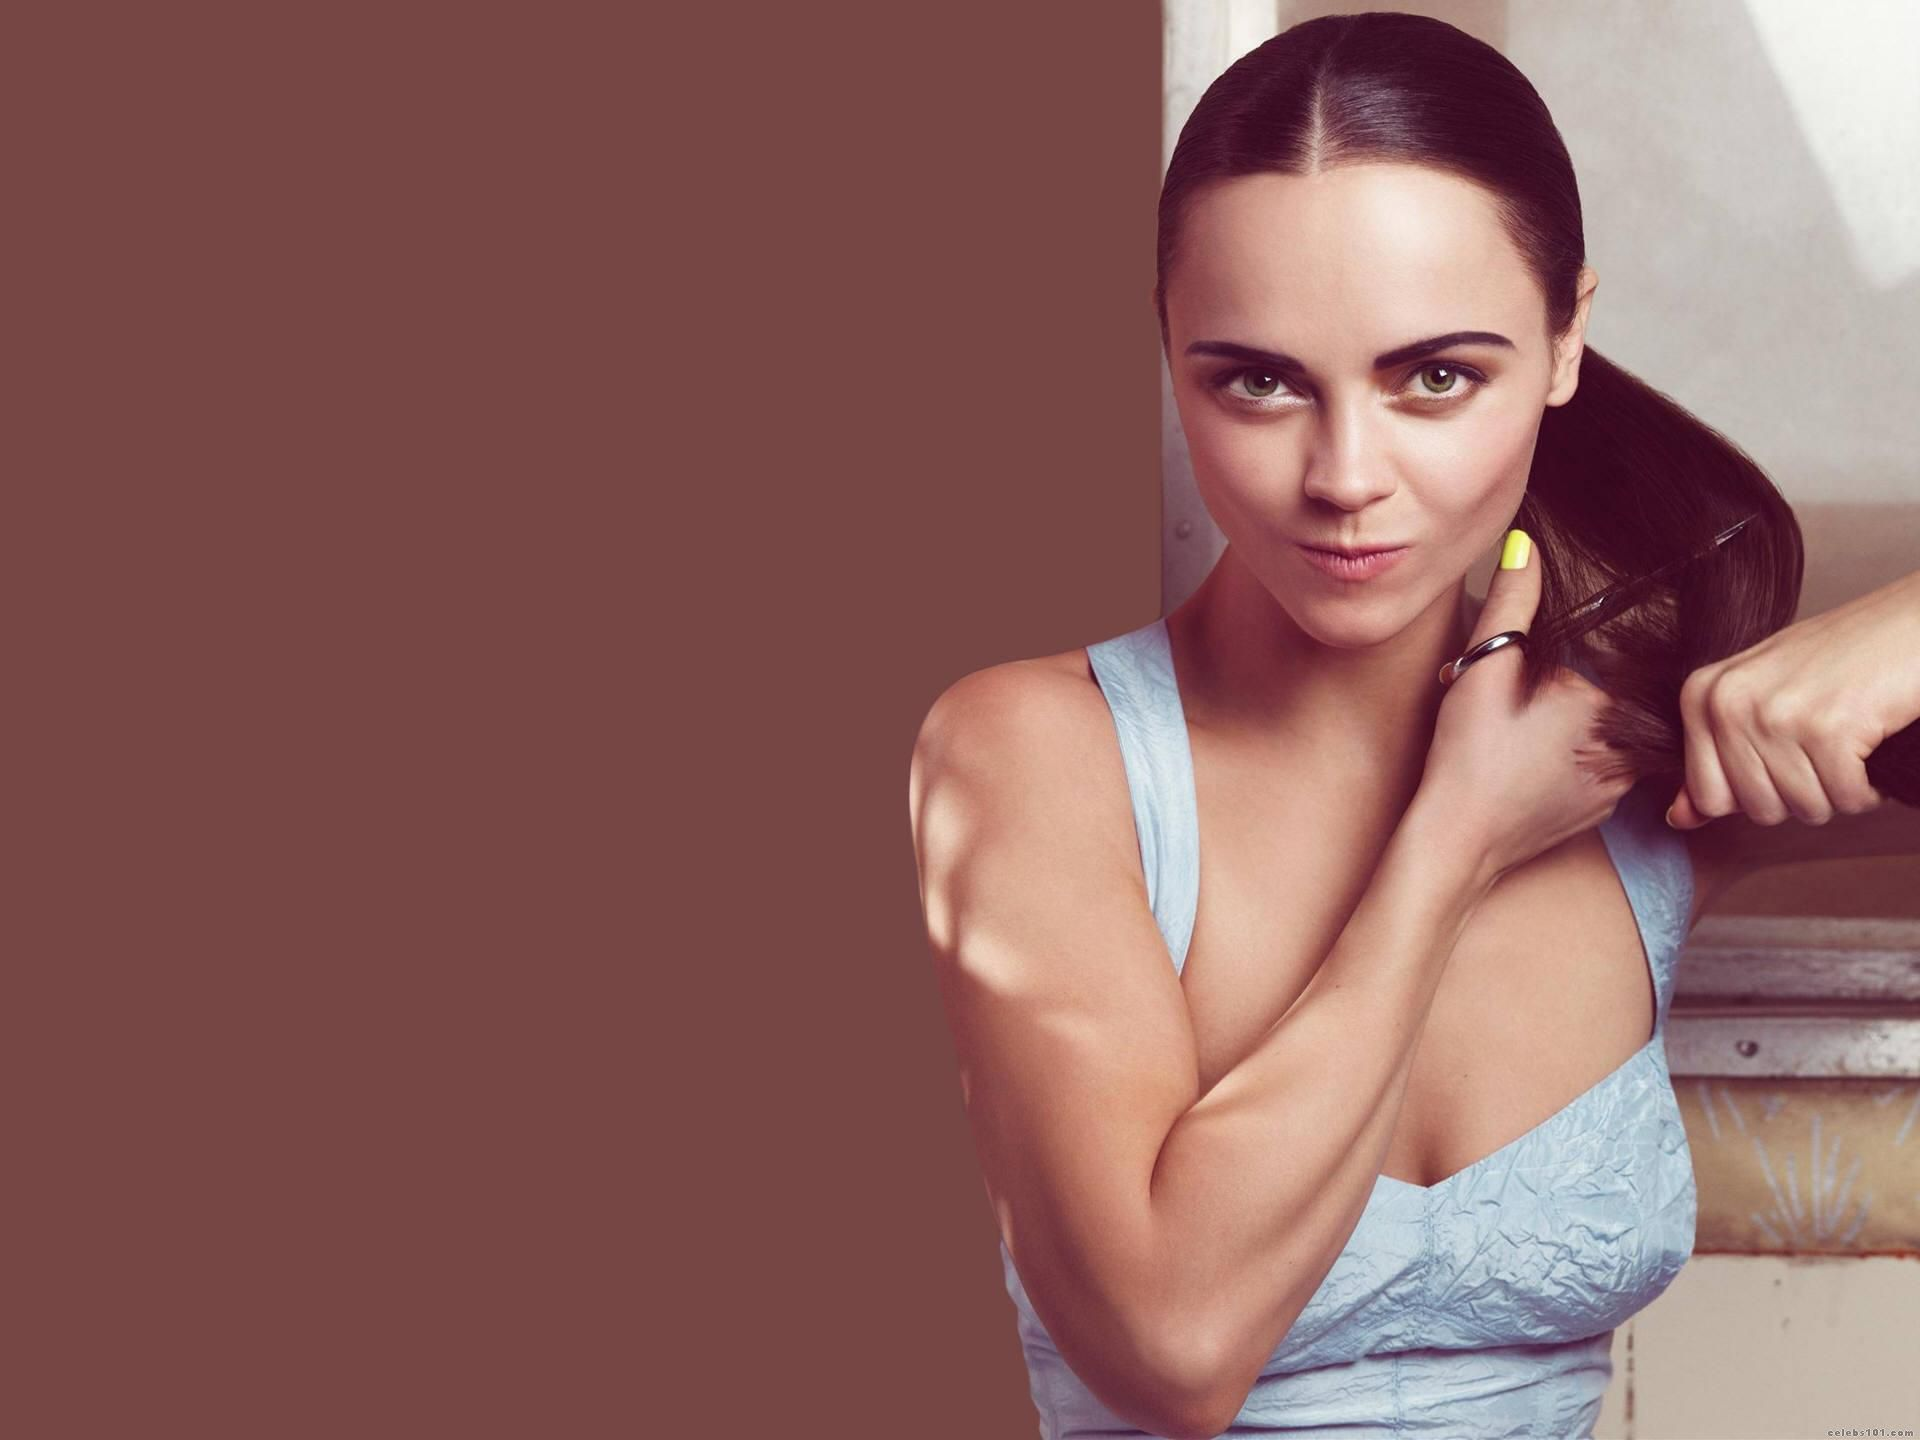 Christina Ricci 2013 HD Wallpaper Background Images 1920x1440